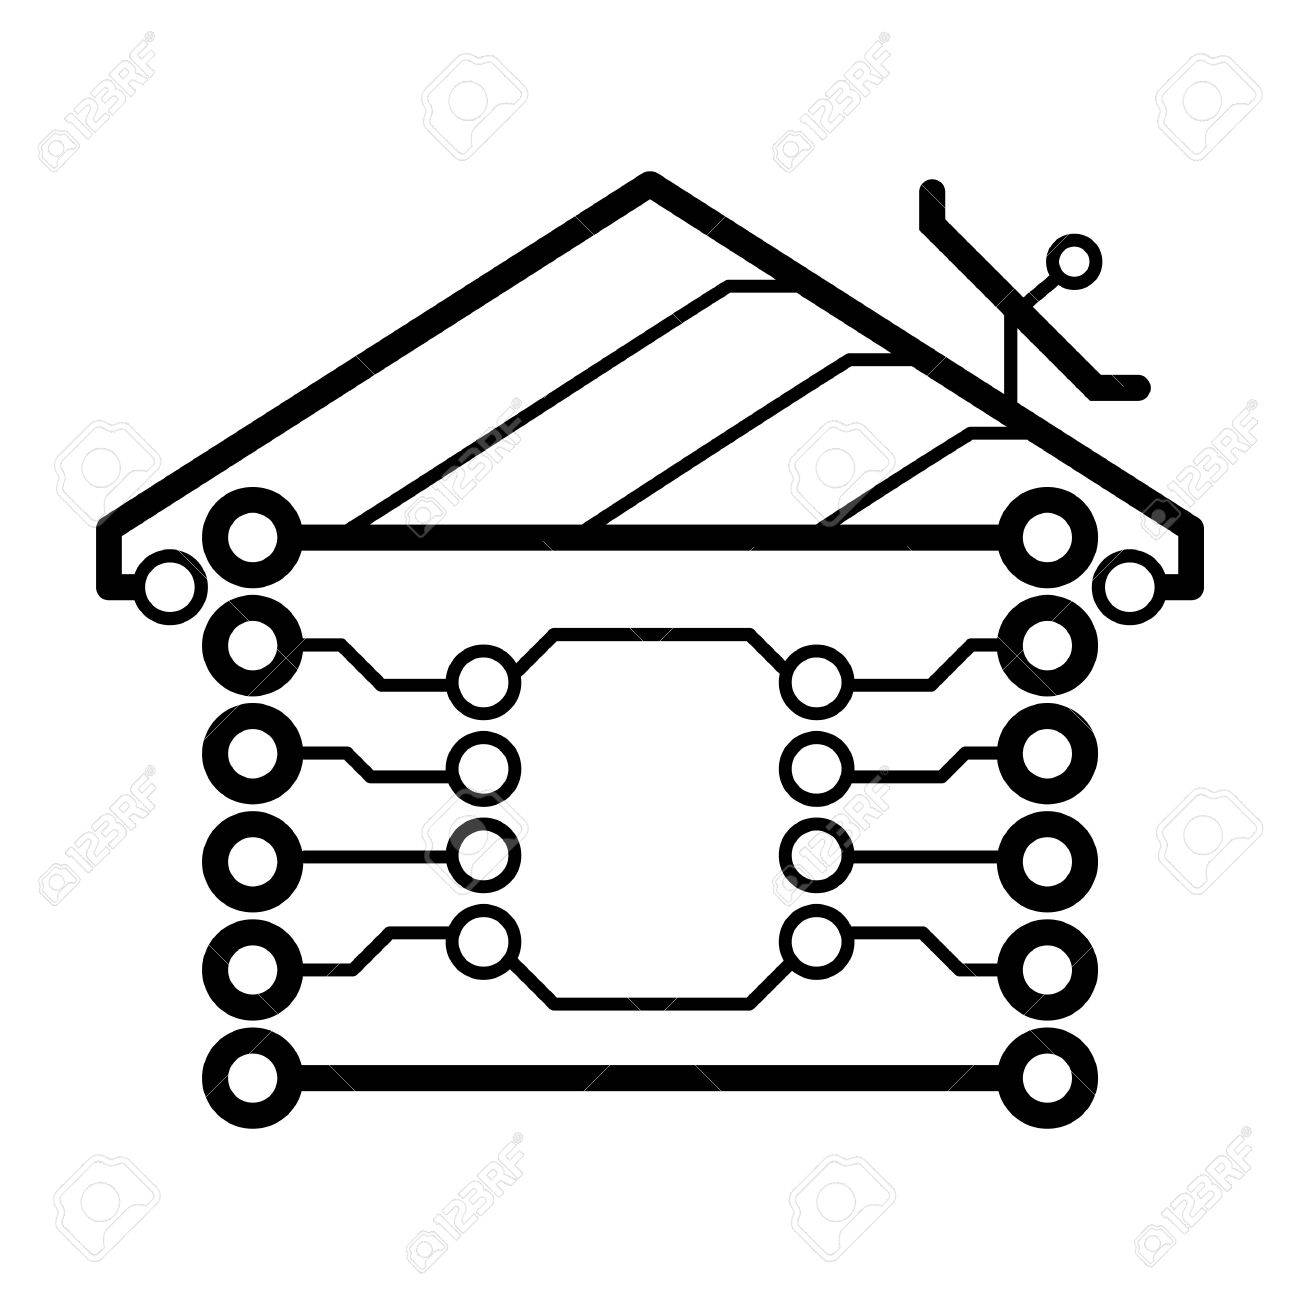 Electronic Circuit Board Clipart Hitech Vector Blank Vignette Fotosearch House Logo Royalty Free Cliparts